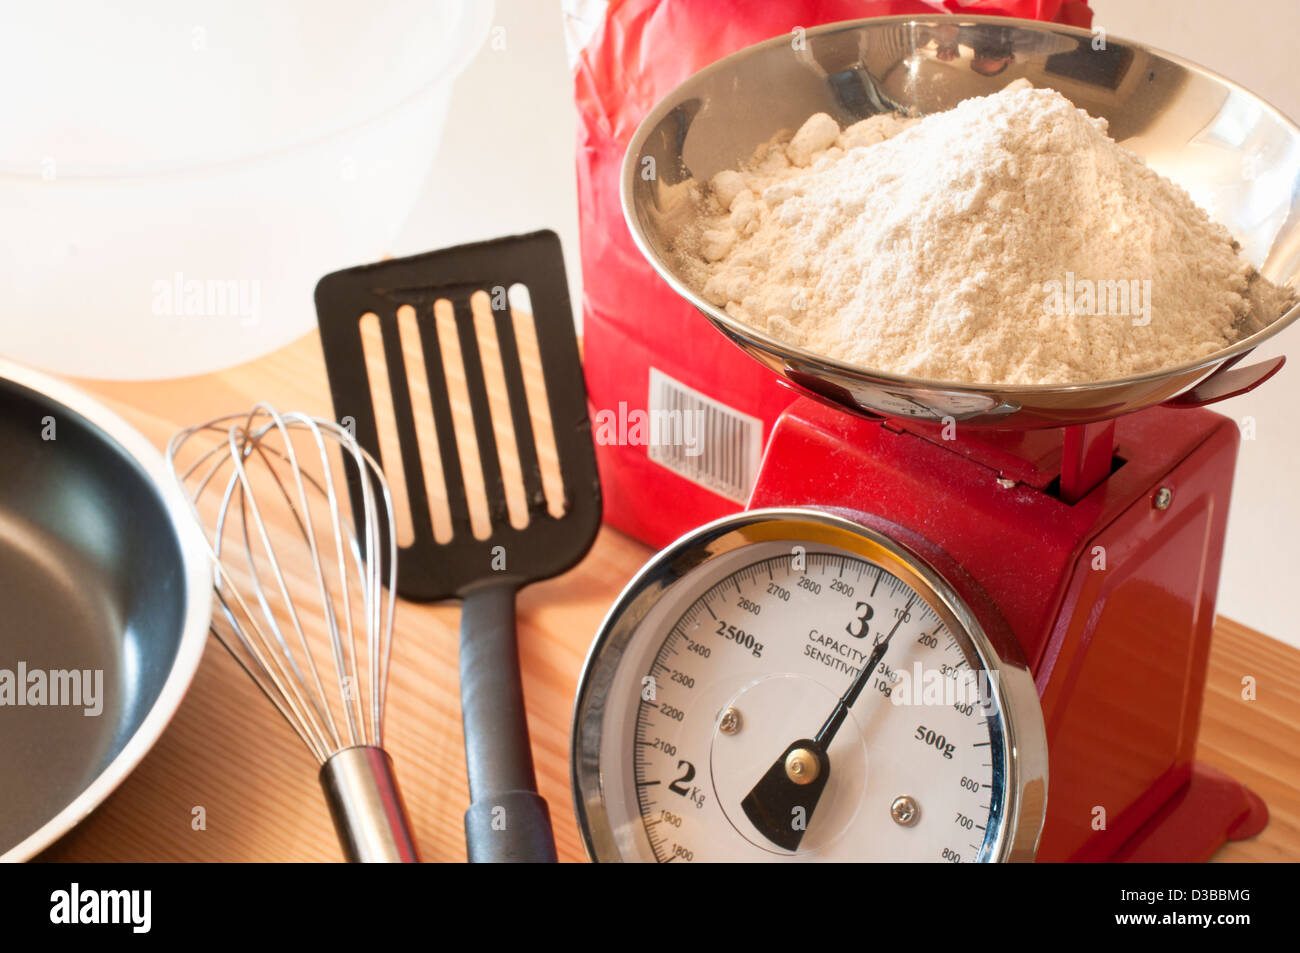 Kitchen scales and flour - Stock Image